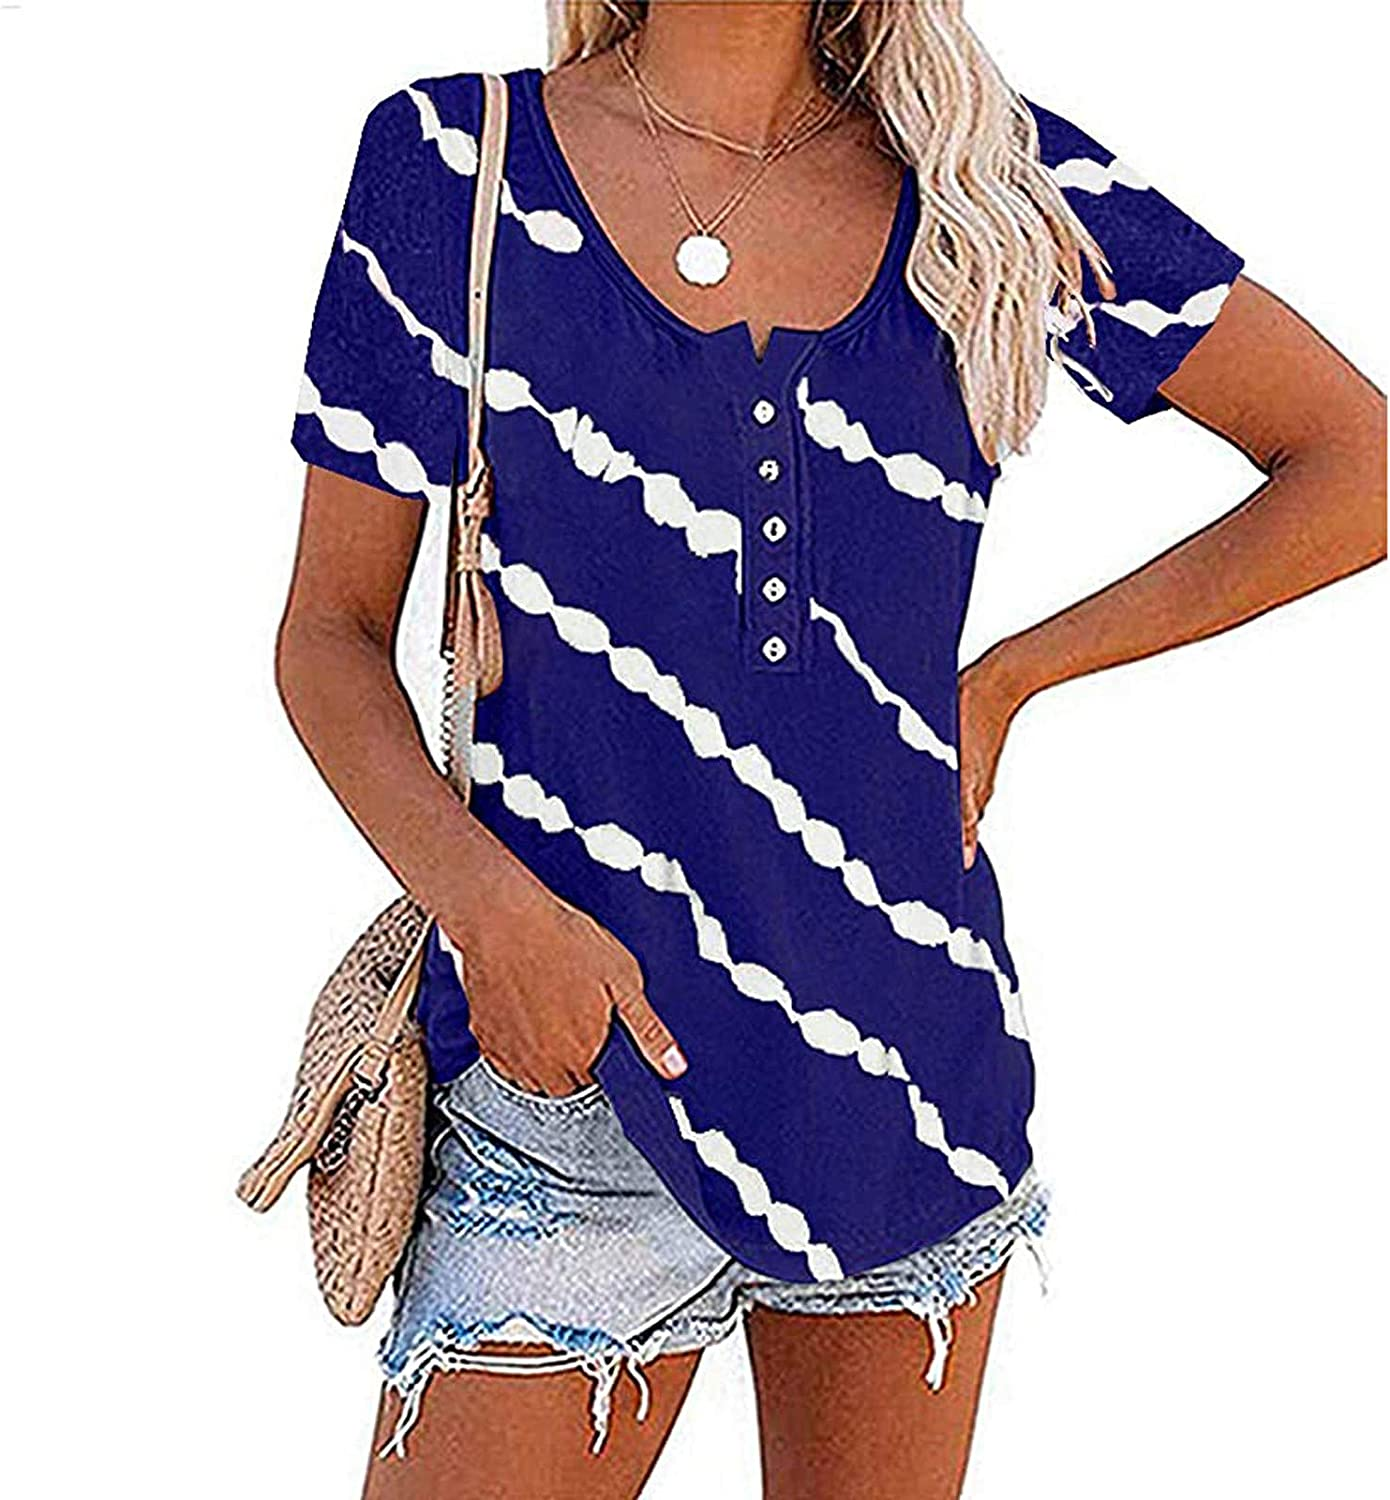 Aukbays T-Shirts for Womens Short Sleeve Crew Neck Stripe Printed Tops Loose Fit Plus Size Casual Blouses Tees Shirts